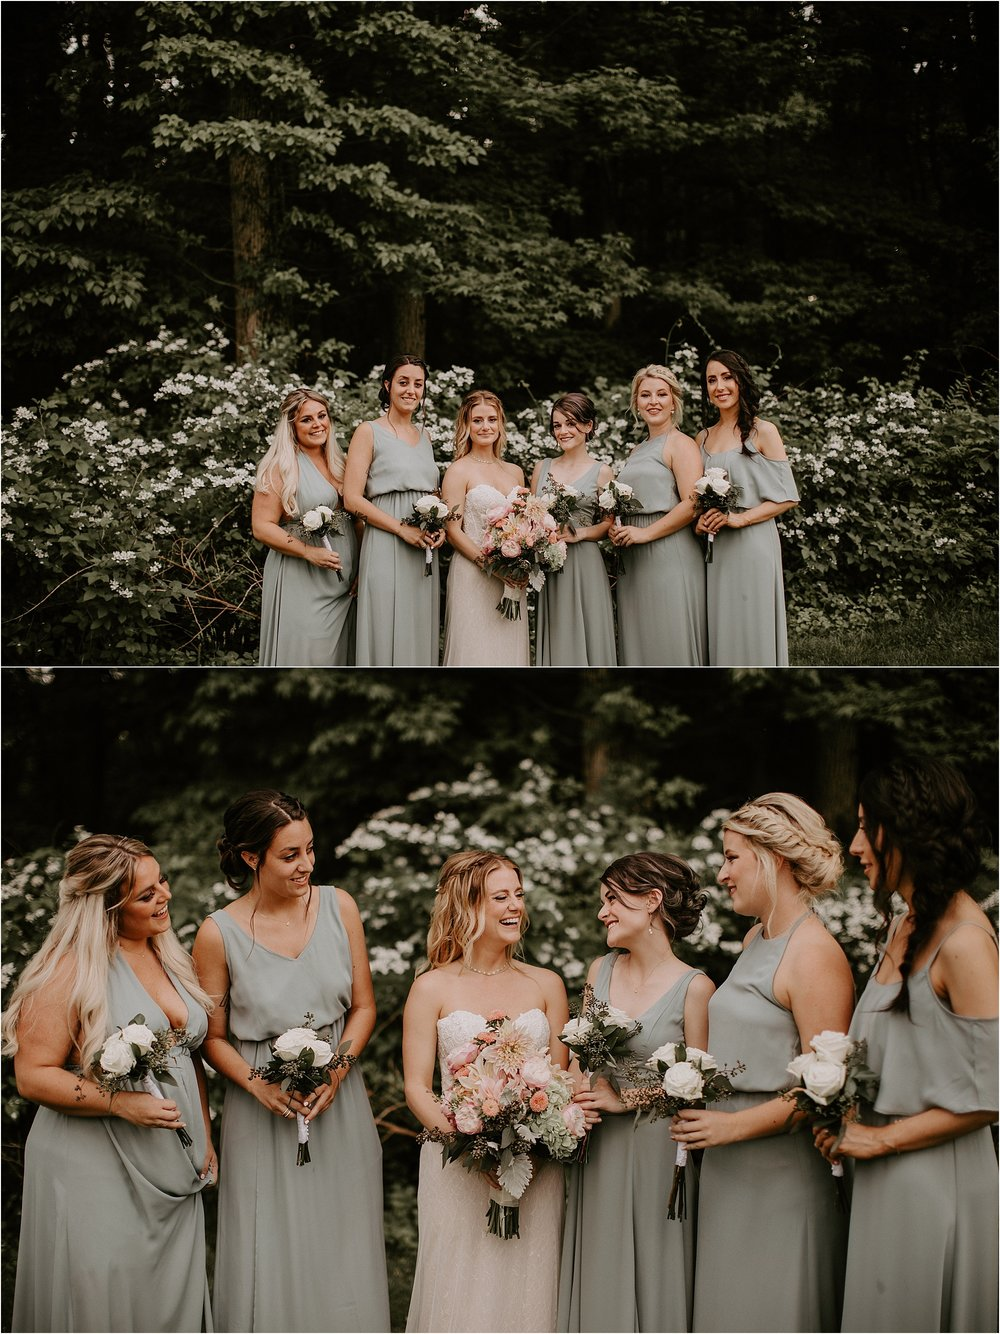 Sarah_Brookhart_Philadelphia_Wedding_Photographer_0033.jpg